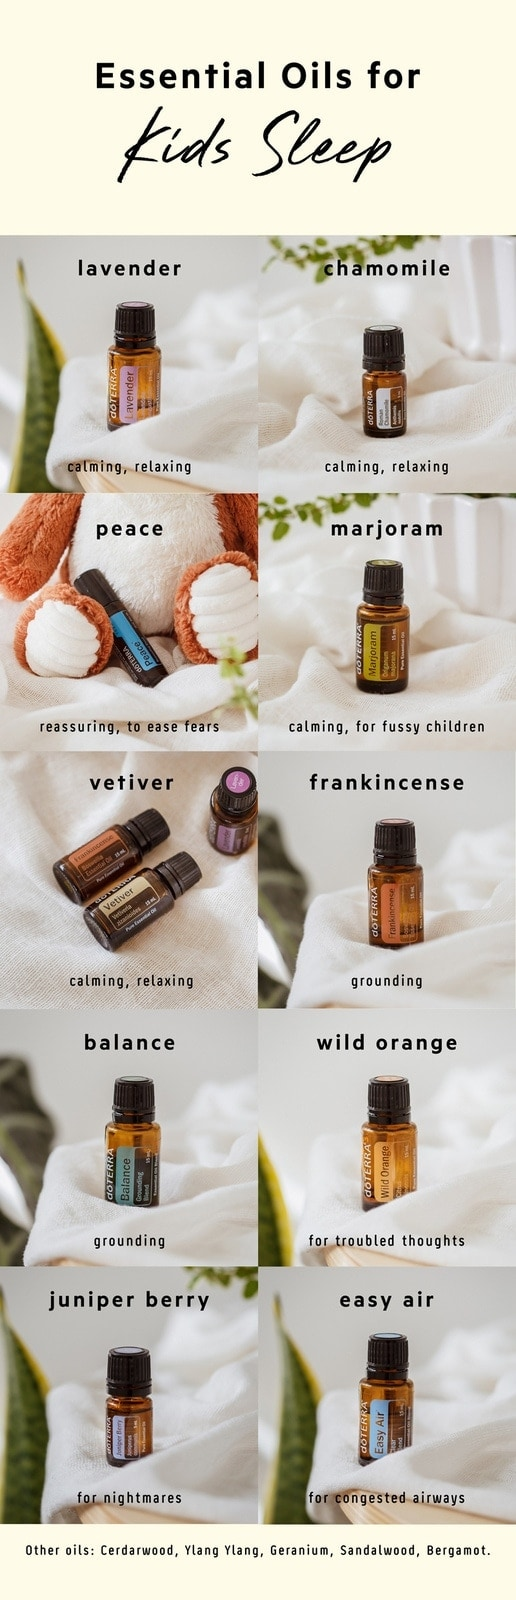 The best essential oils to help support kid's sleep and how to safely use them. #essentialoilsrecipes #essentialoilskids #essentialoilskidssleep #dorerraessentialoils #diffuserblendskids #sleepoilskids #essentialoilschildren #essentialoilssweetdreams #essentialoilssleep #topessentialoilsforkids #AscensionKitchen // Pin to your own inspiration board! //